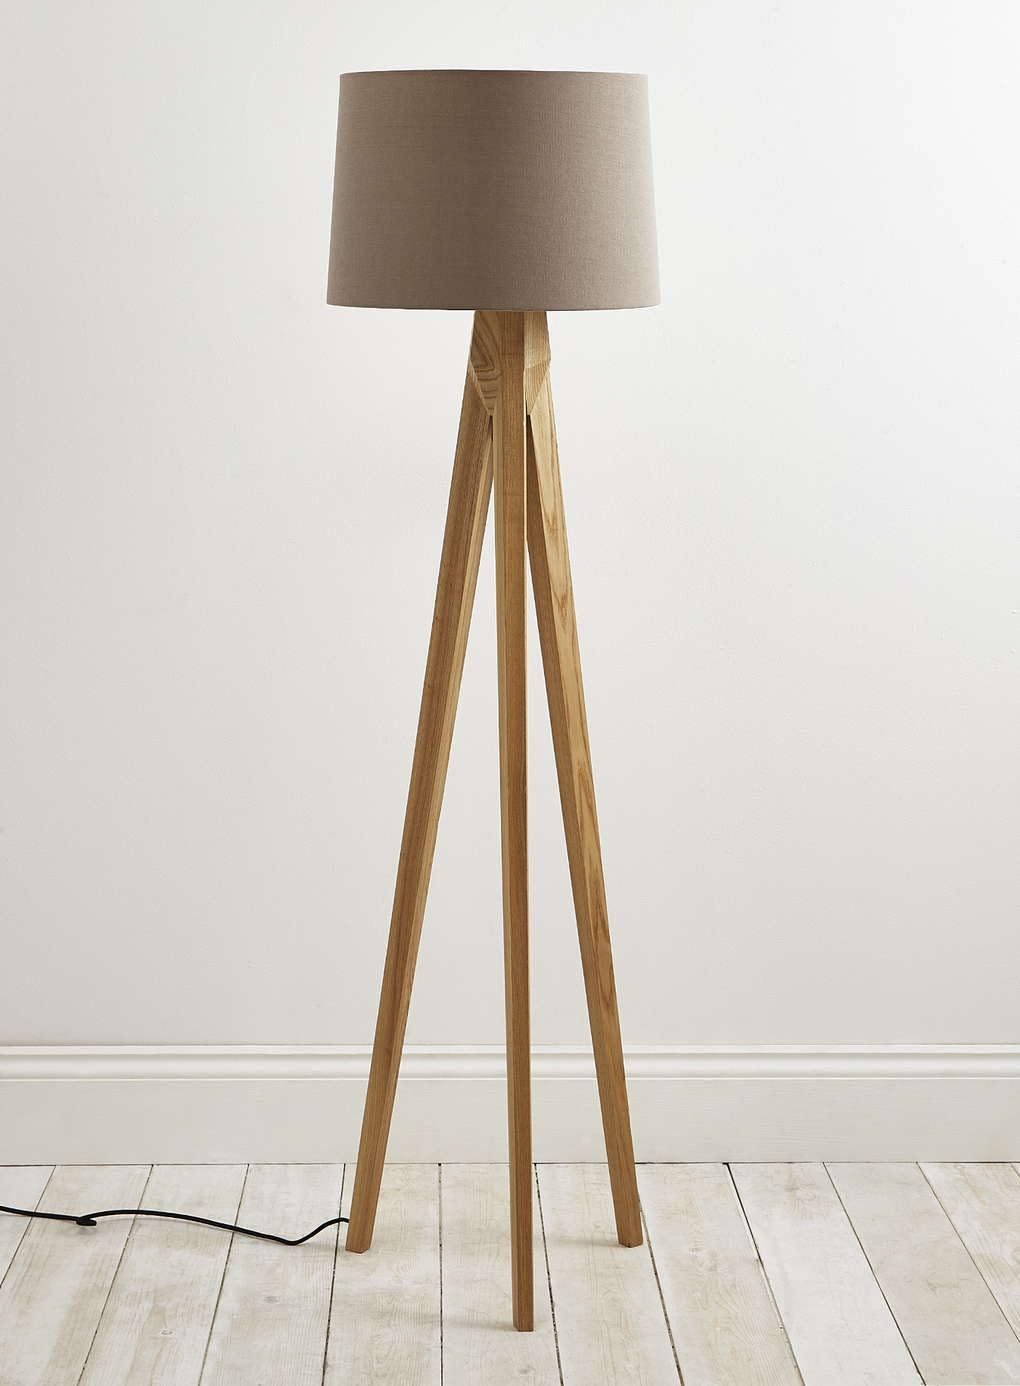 Tripod Floor Lamp Wooden Legs In 2019 Wooden Floor Lamps